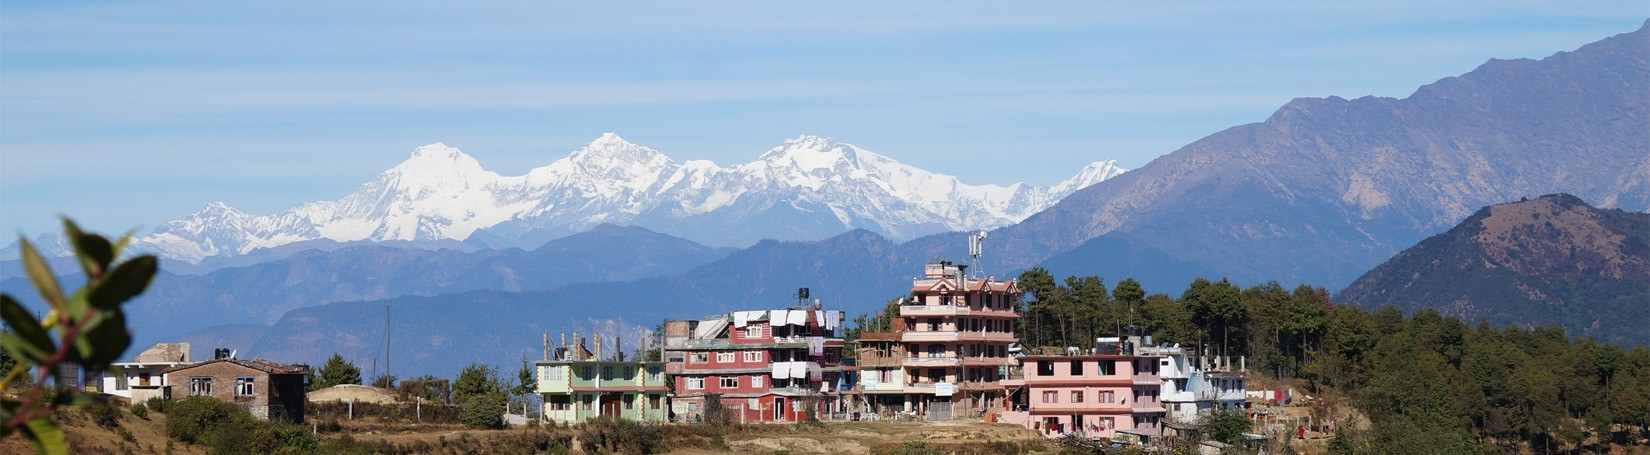 Chisapani - One of the hill near from Kathmandu